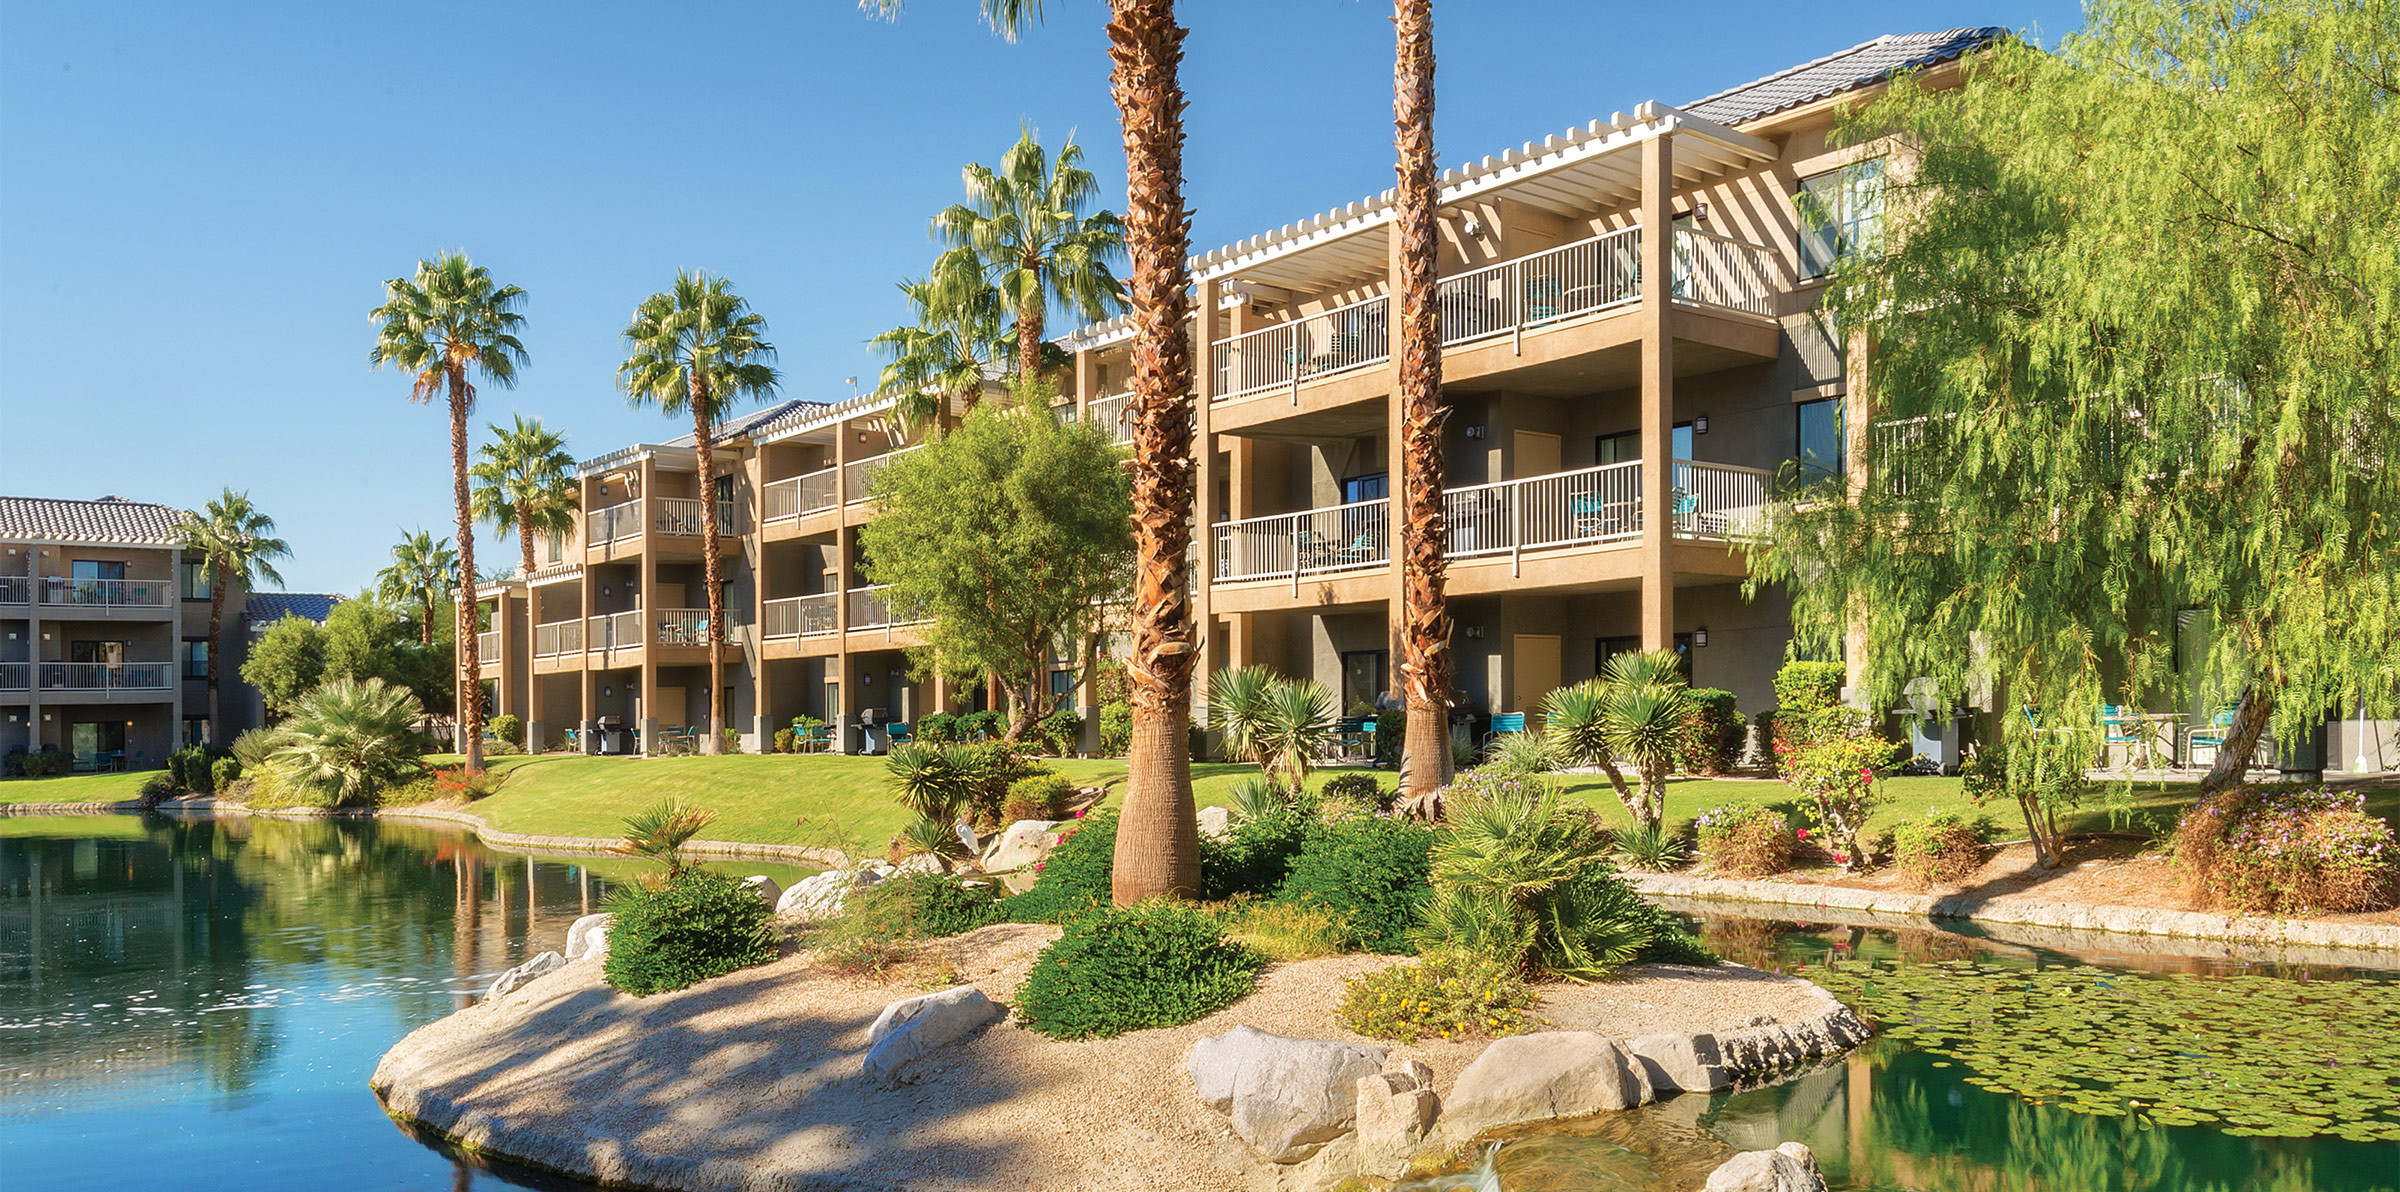 Apartment 3 Bedroom 2 Bath In Indio  CA   Palm Springs  5 miles from COACHELLA photo 19070890